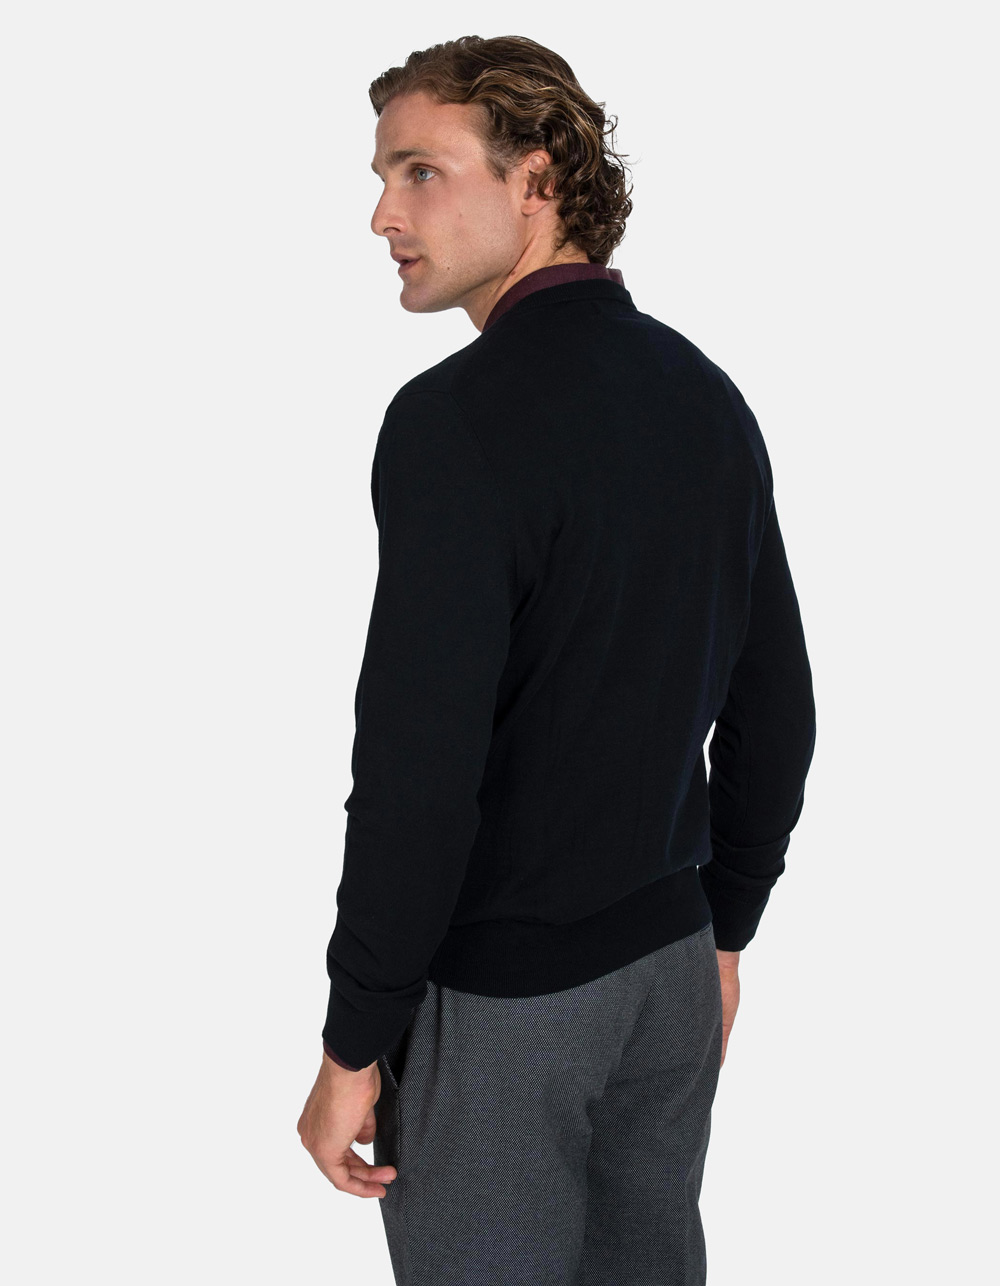 Black v-neck sweater - Backside